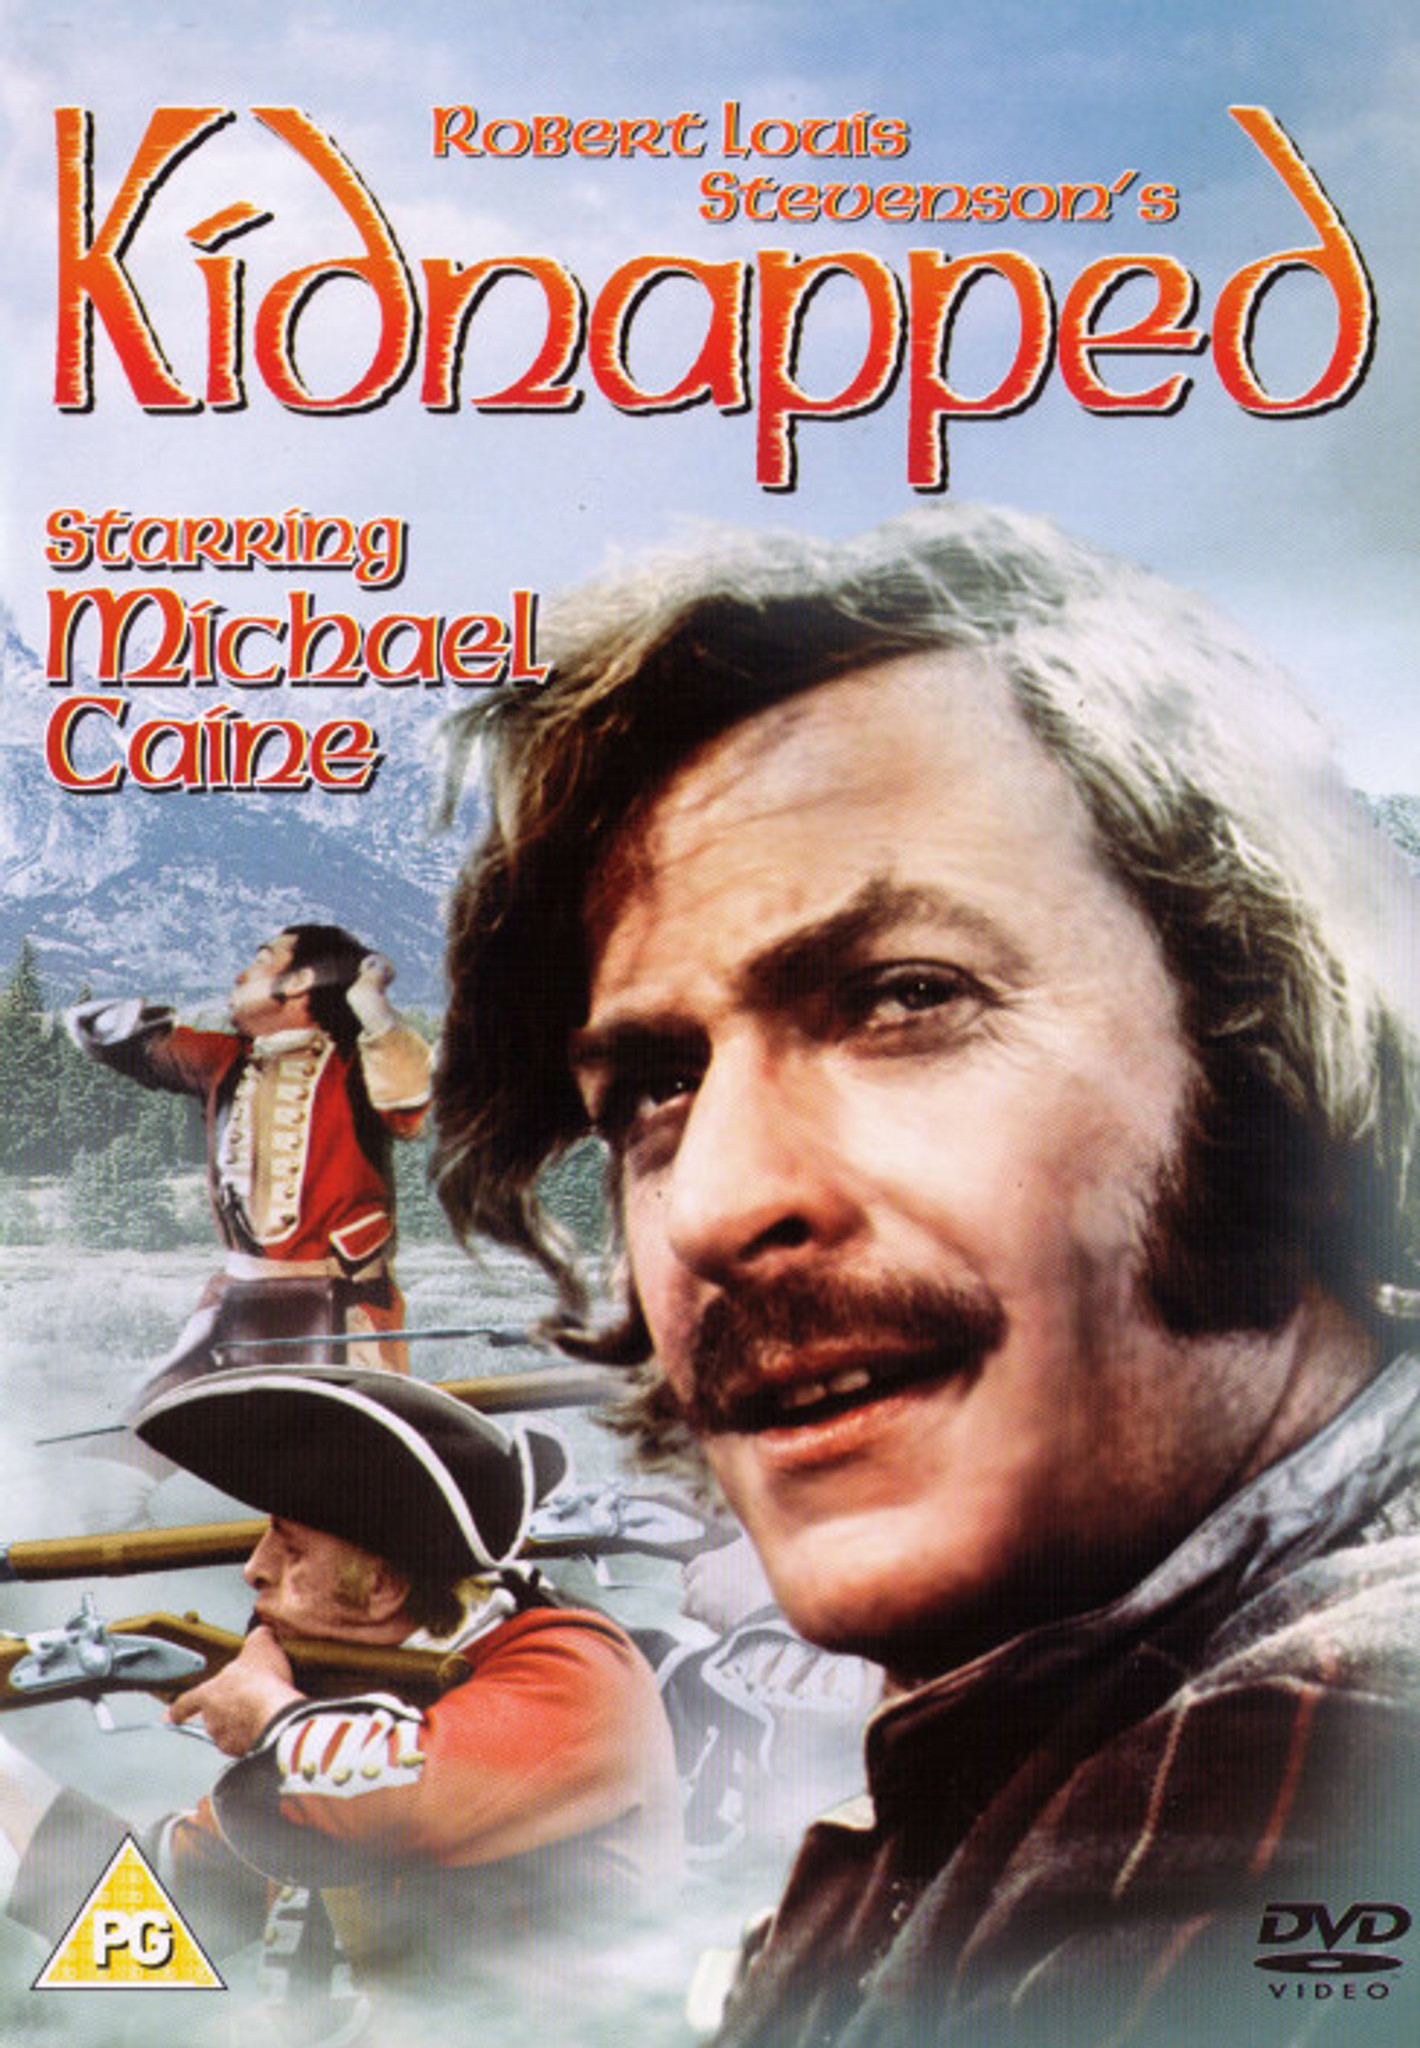 Kidnapped (1971) Dvd